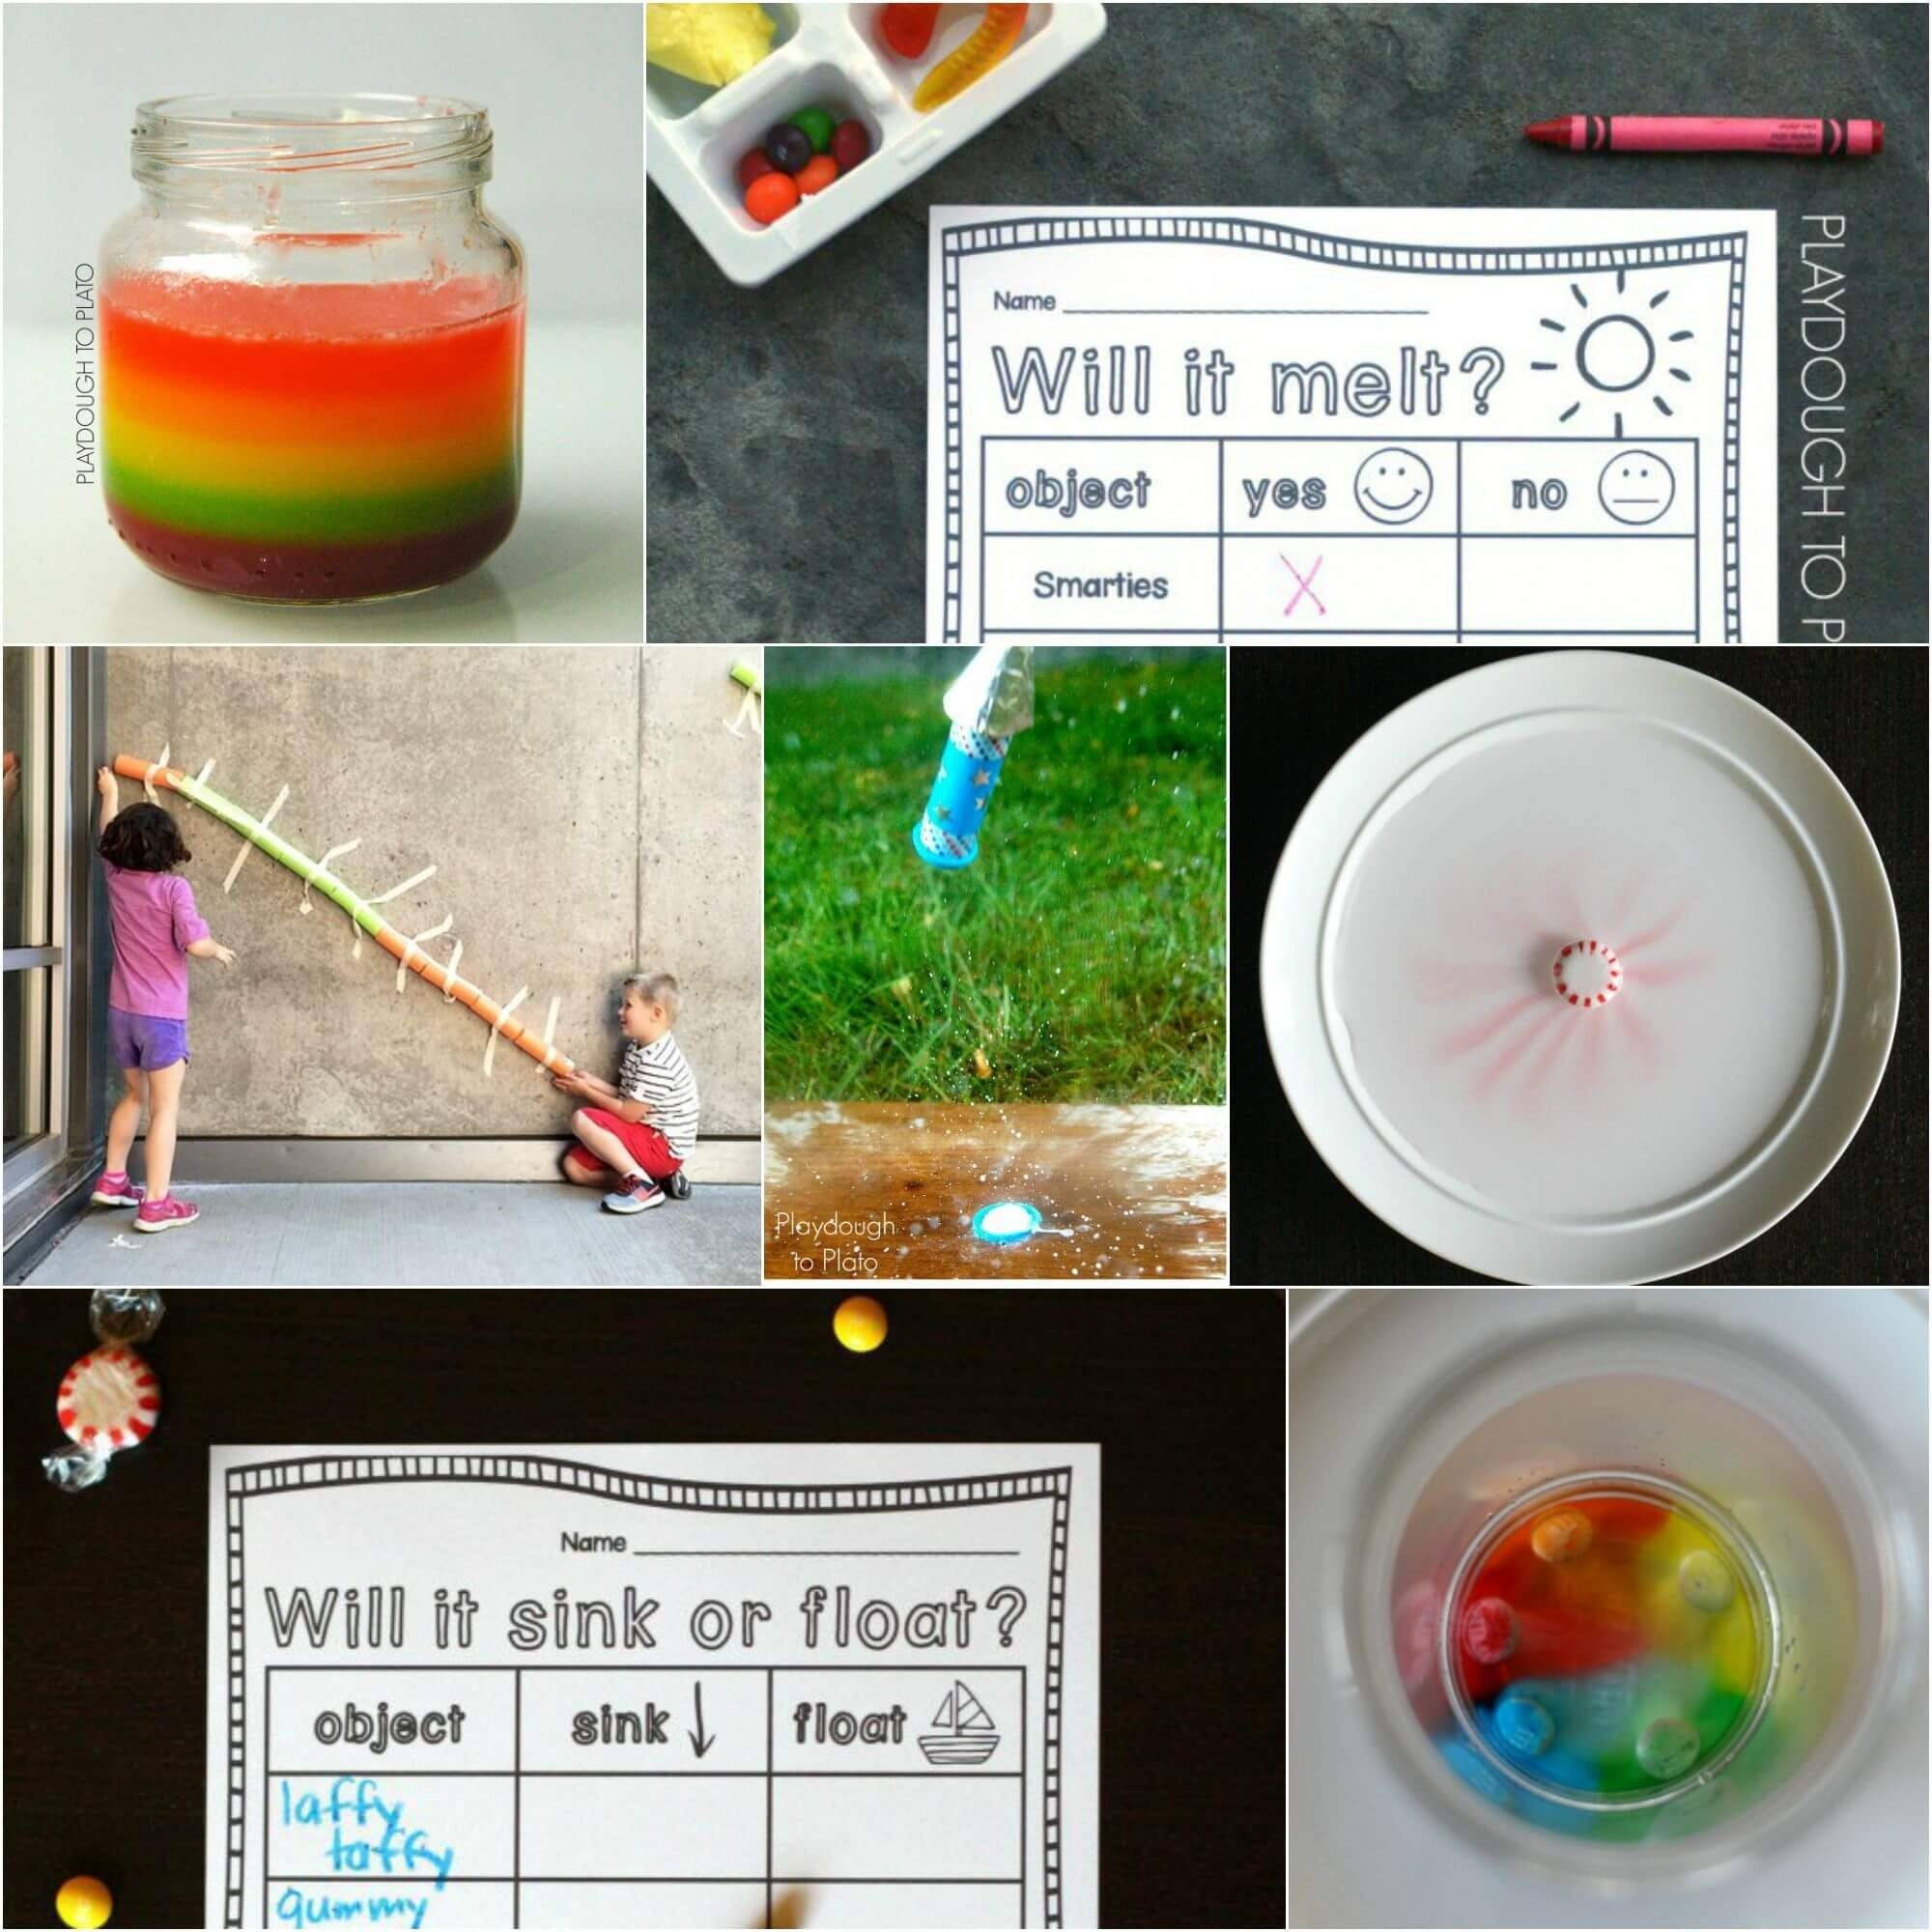 10 Pretty Ideas For Science Projects For Kids 21 candy science experiments playdough to plato 3 2021